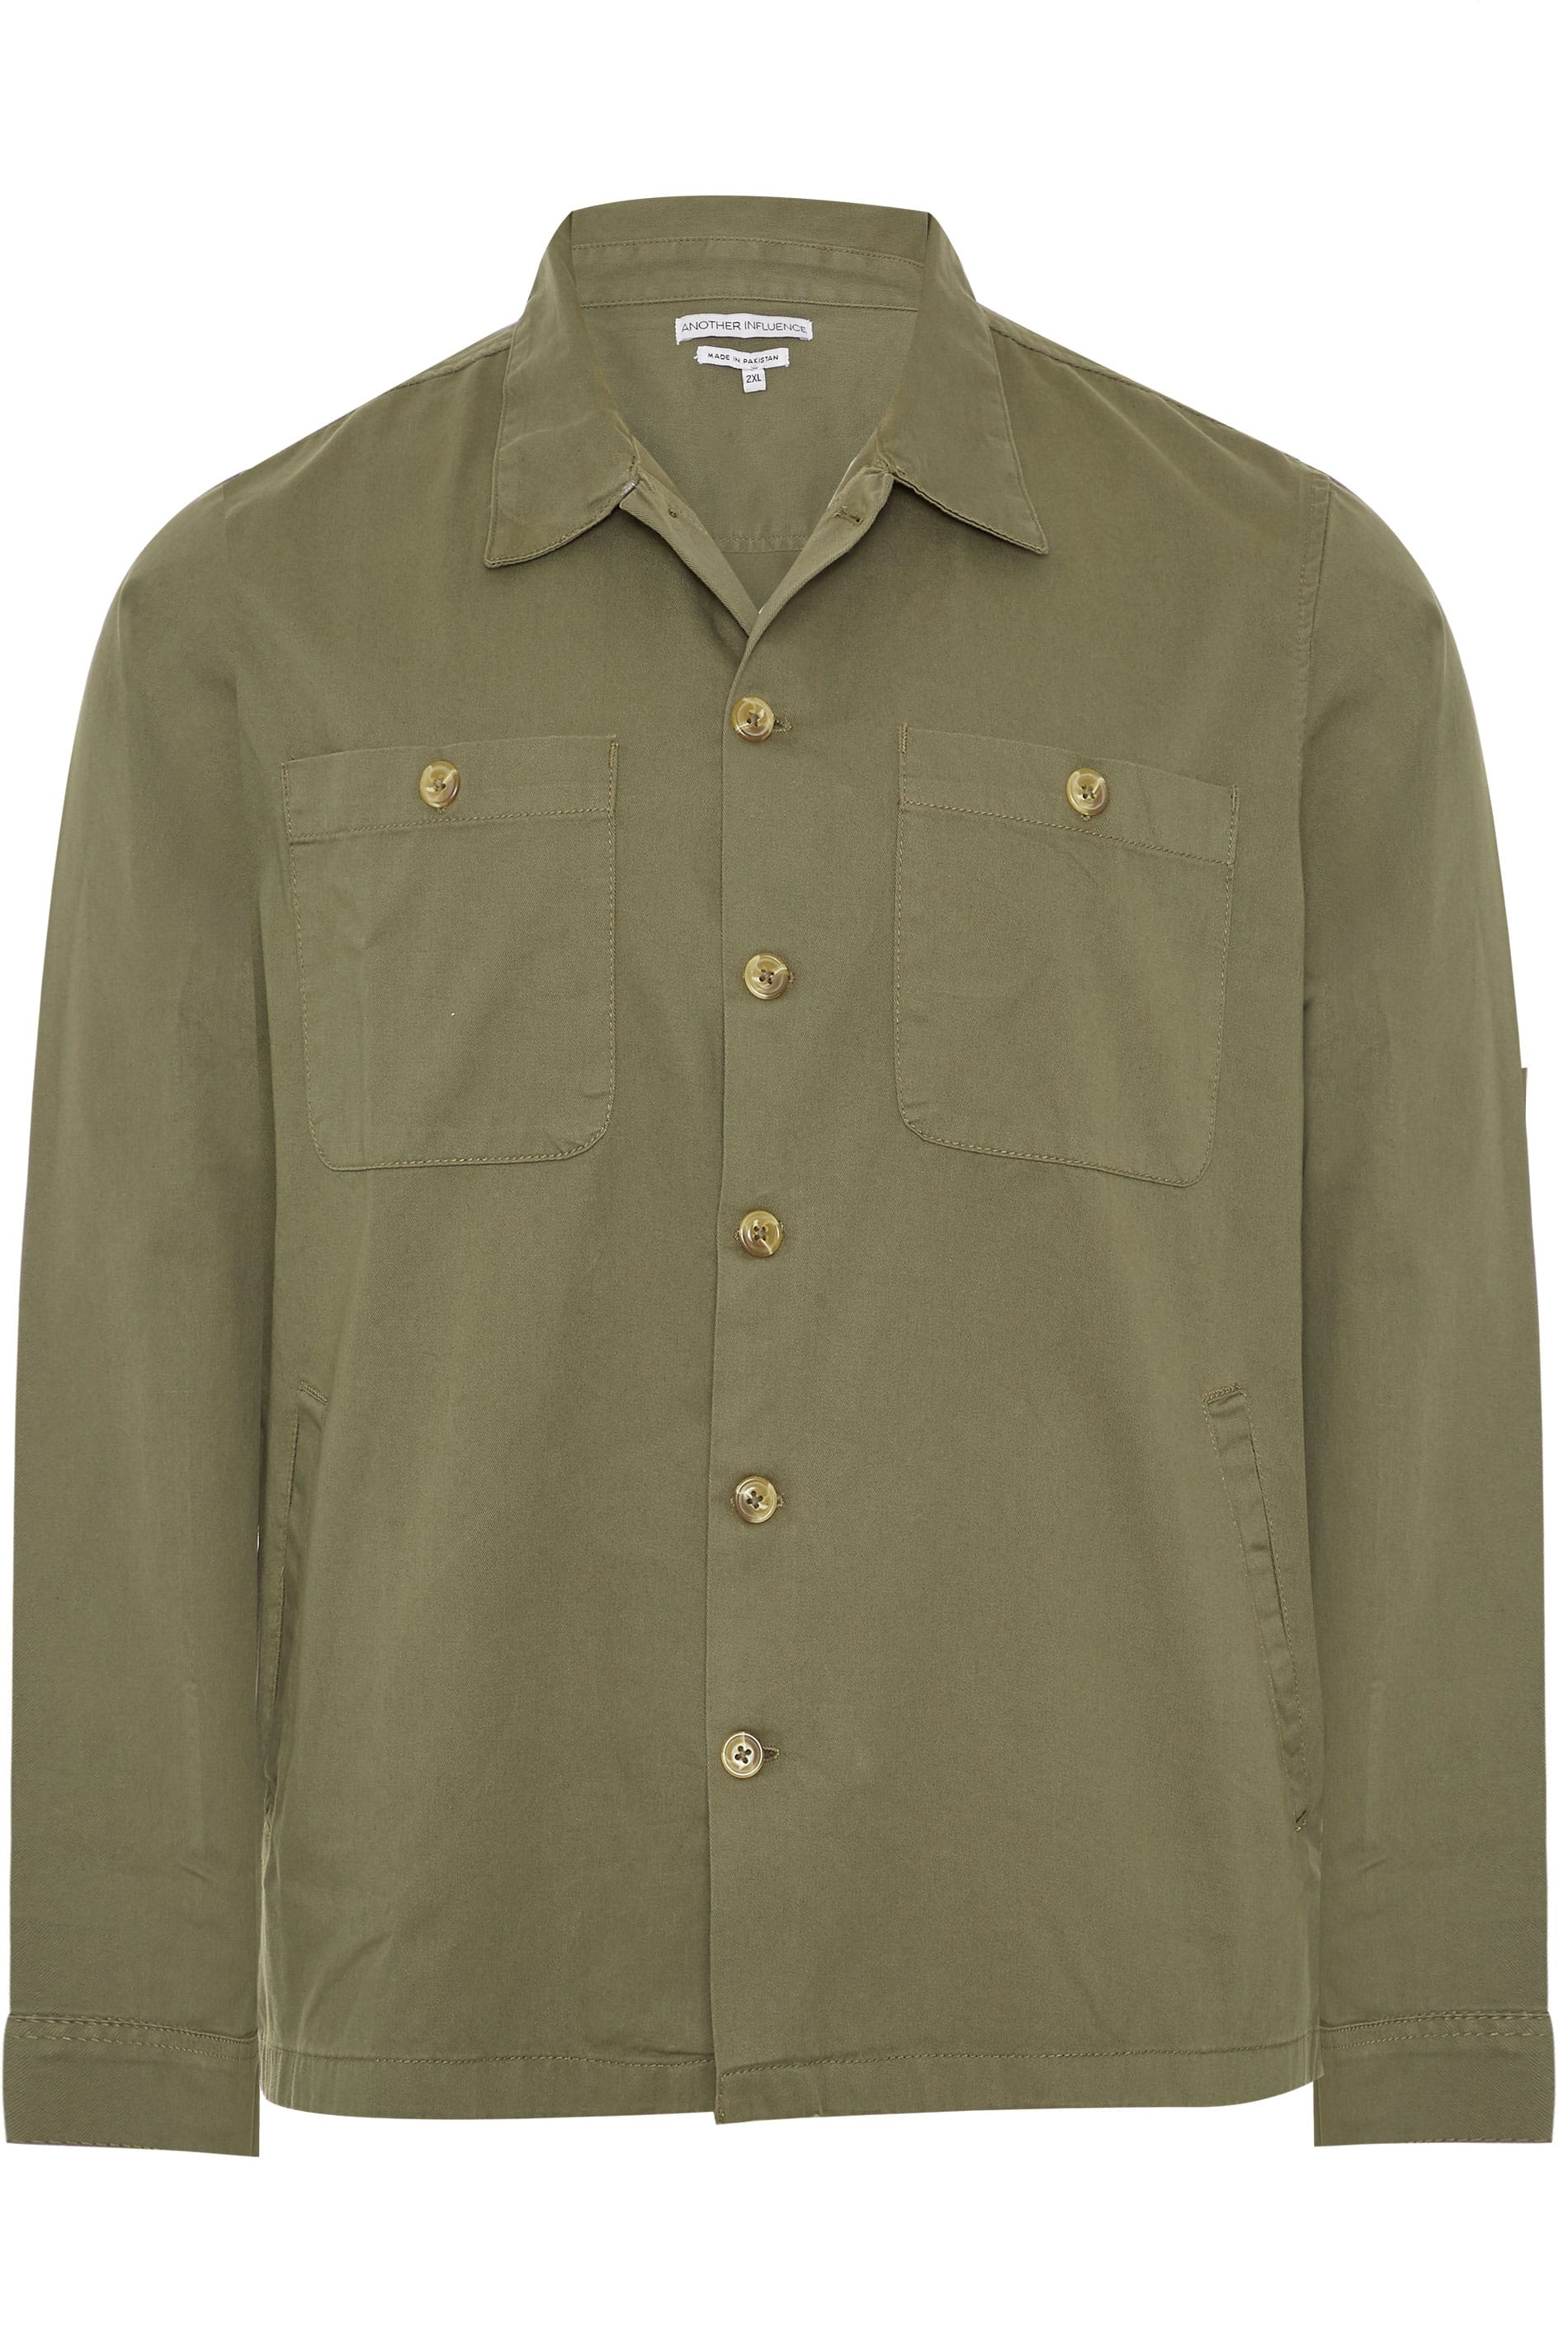 ANOTHER INFLUENCE Khaki Twill Utility Overshirt